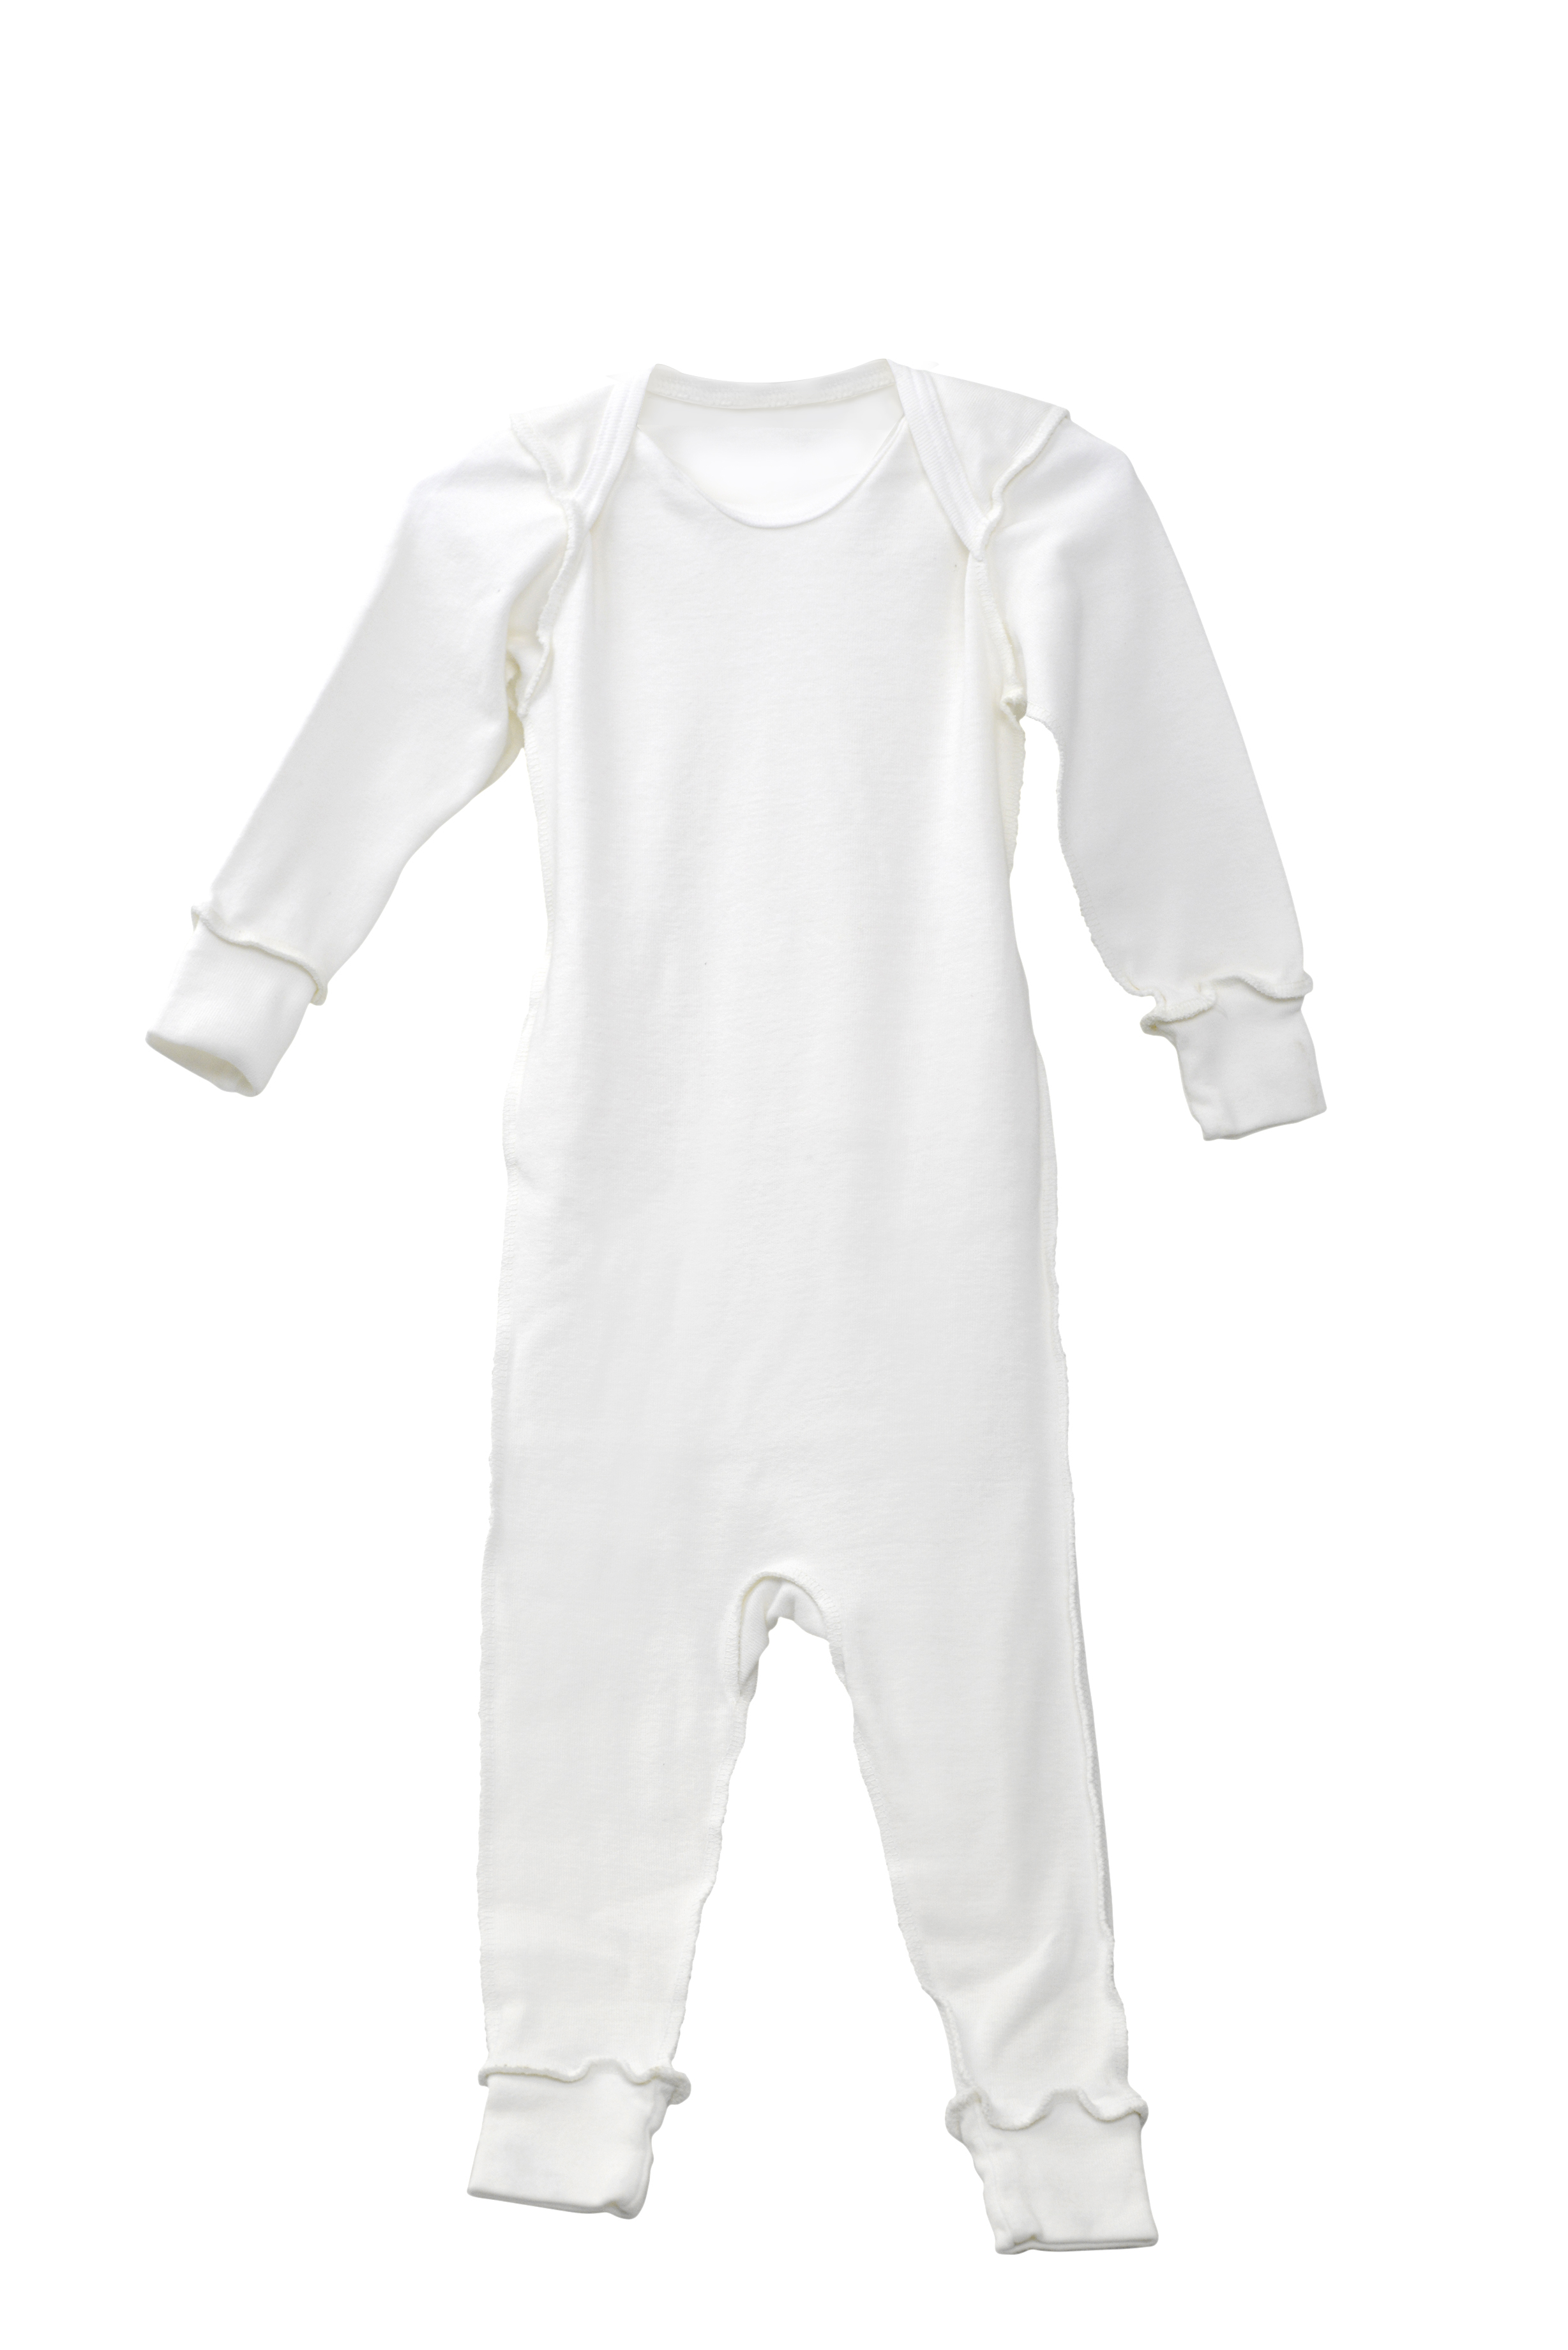 Mustela Introduces Skin-Soothing PJs for Eczema-Prone Babies and ...